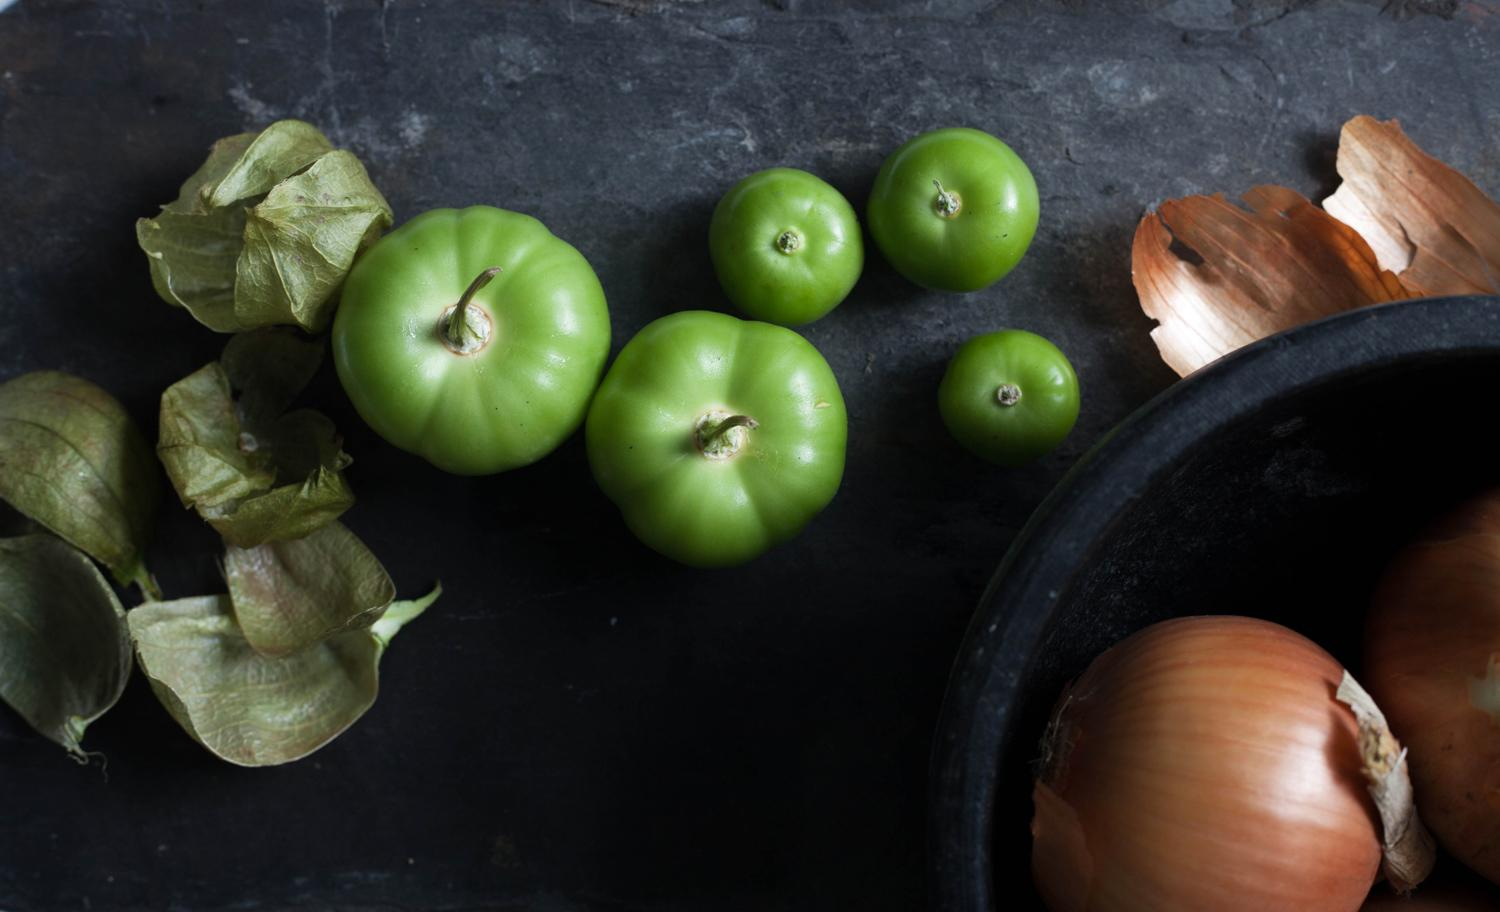 Apples and tomatillos - image 7 - student project